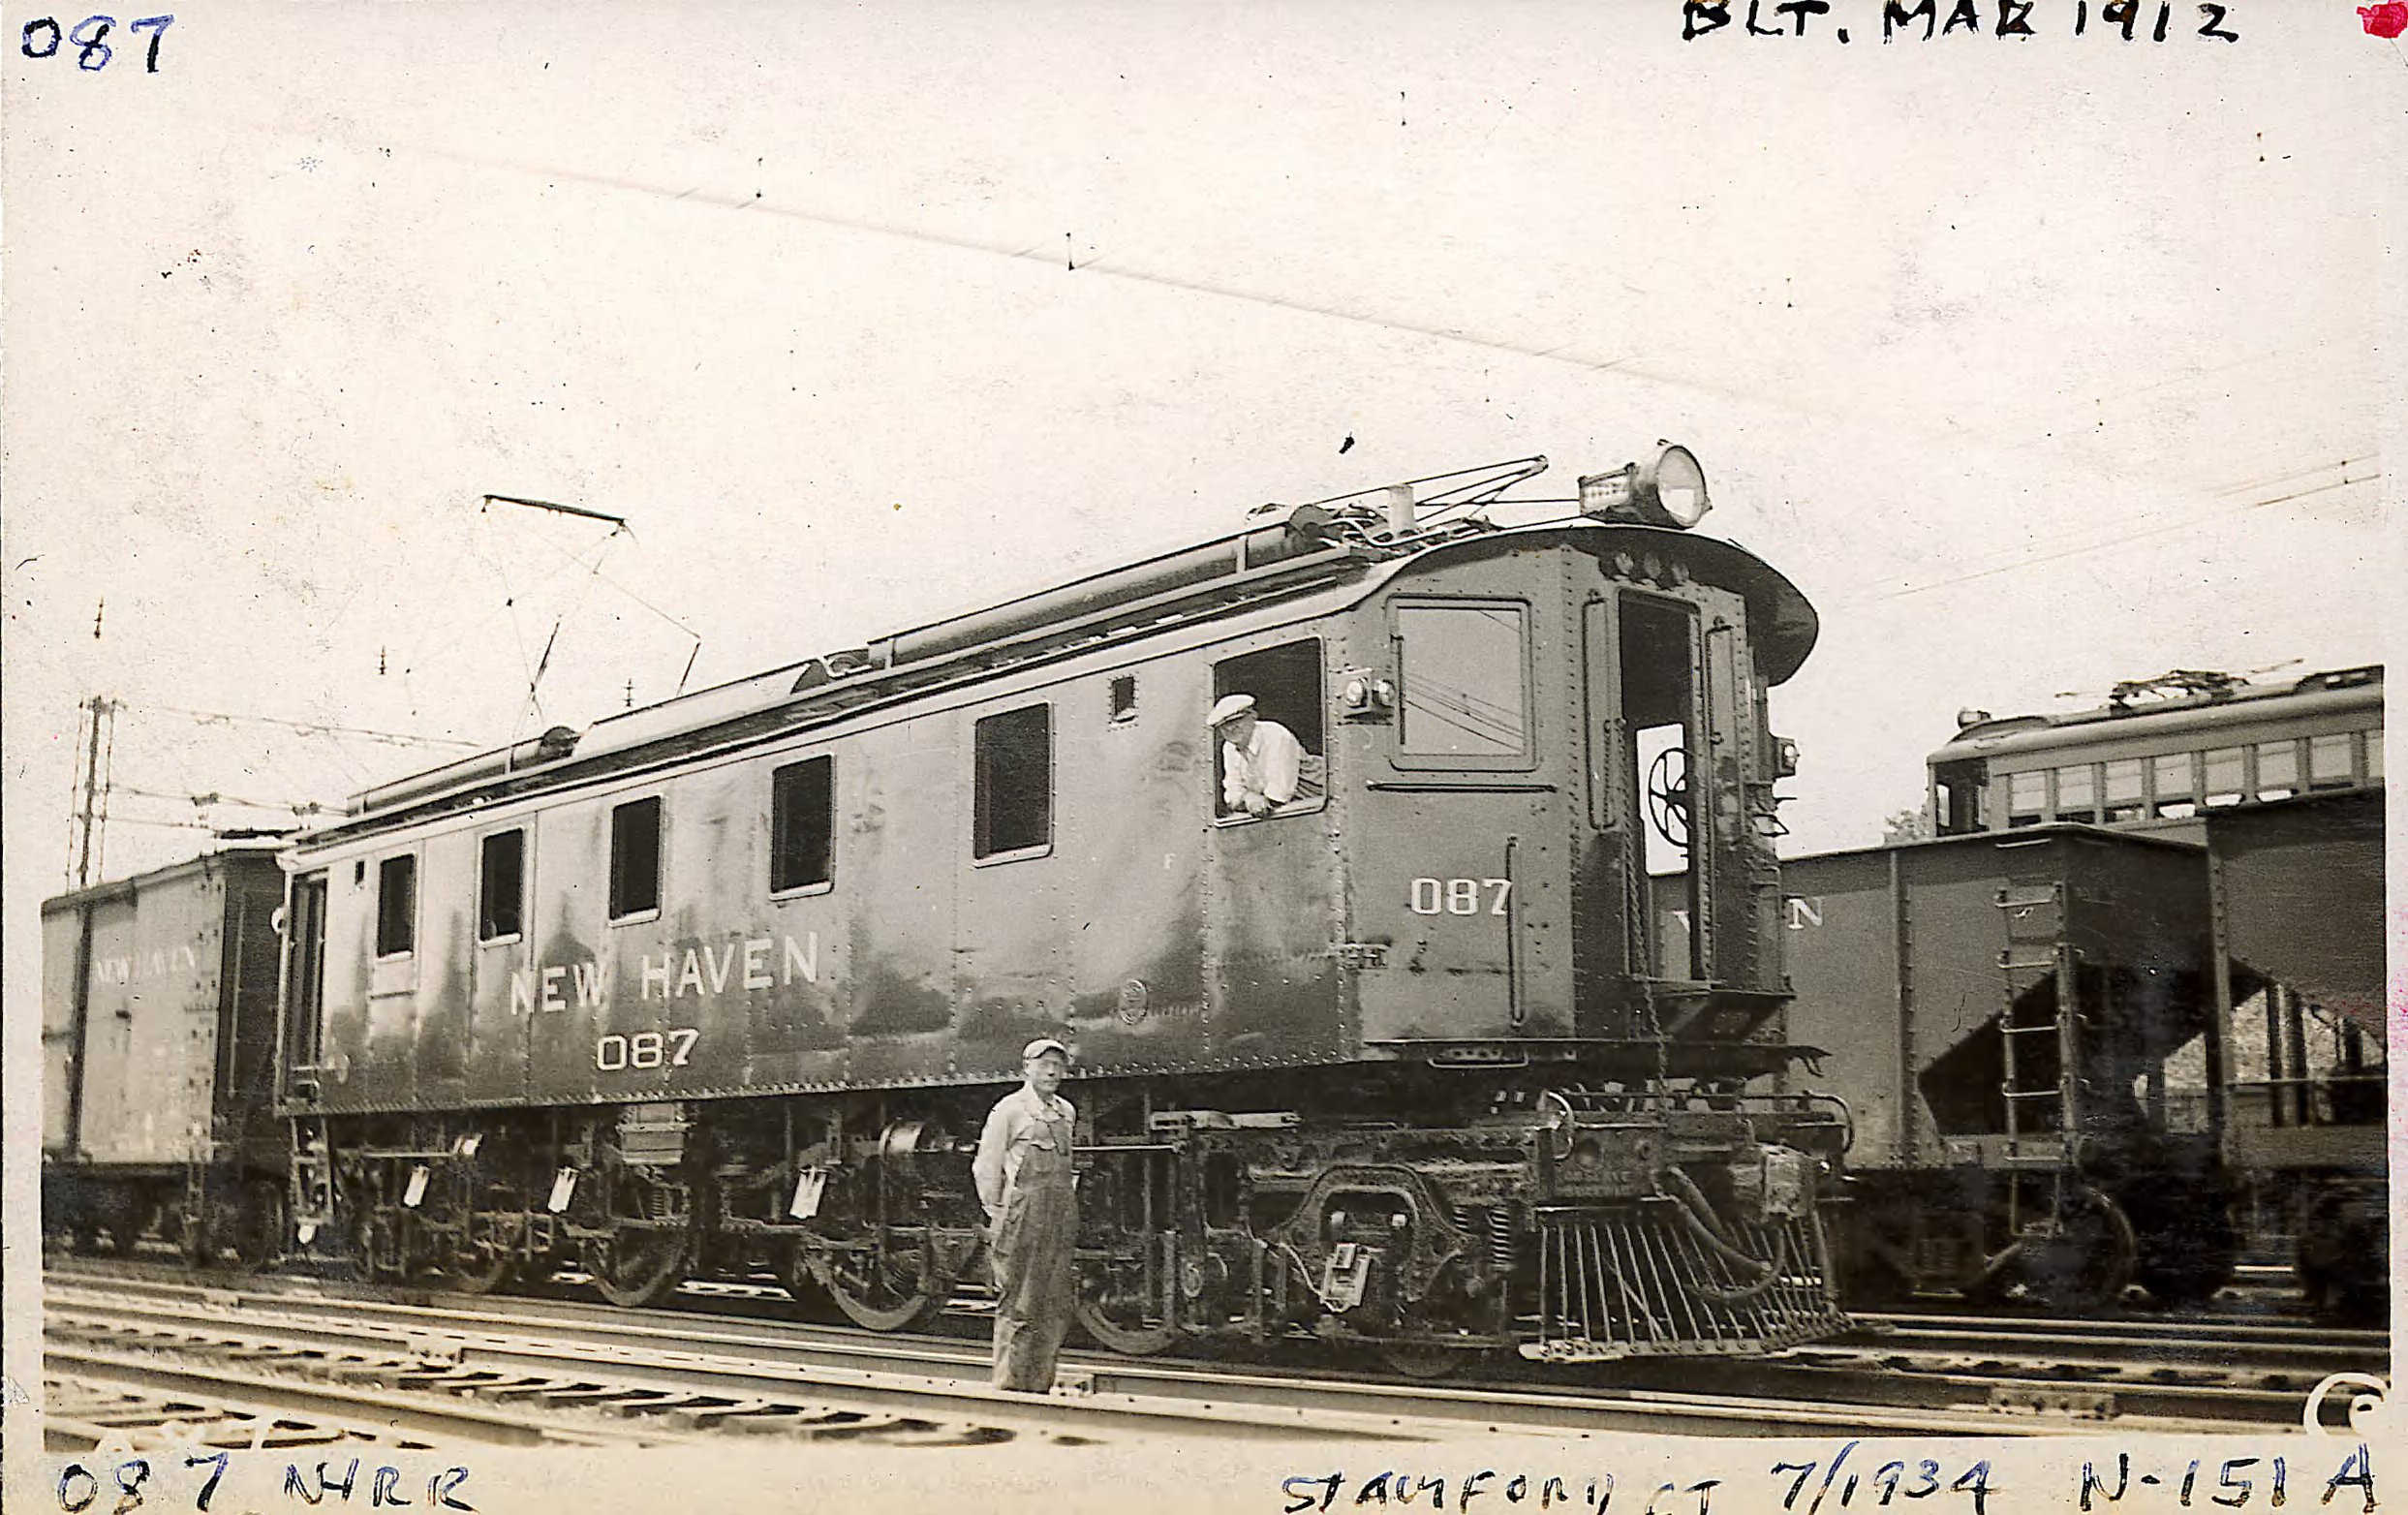 Locomotive 087, built March 1912